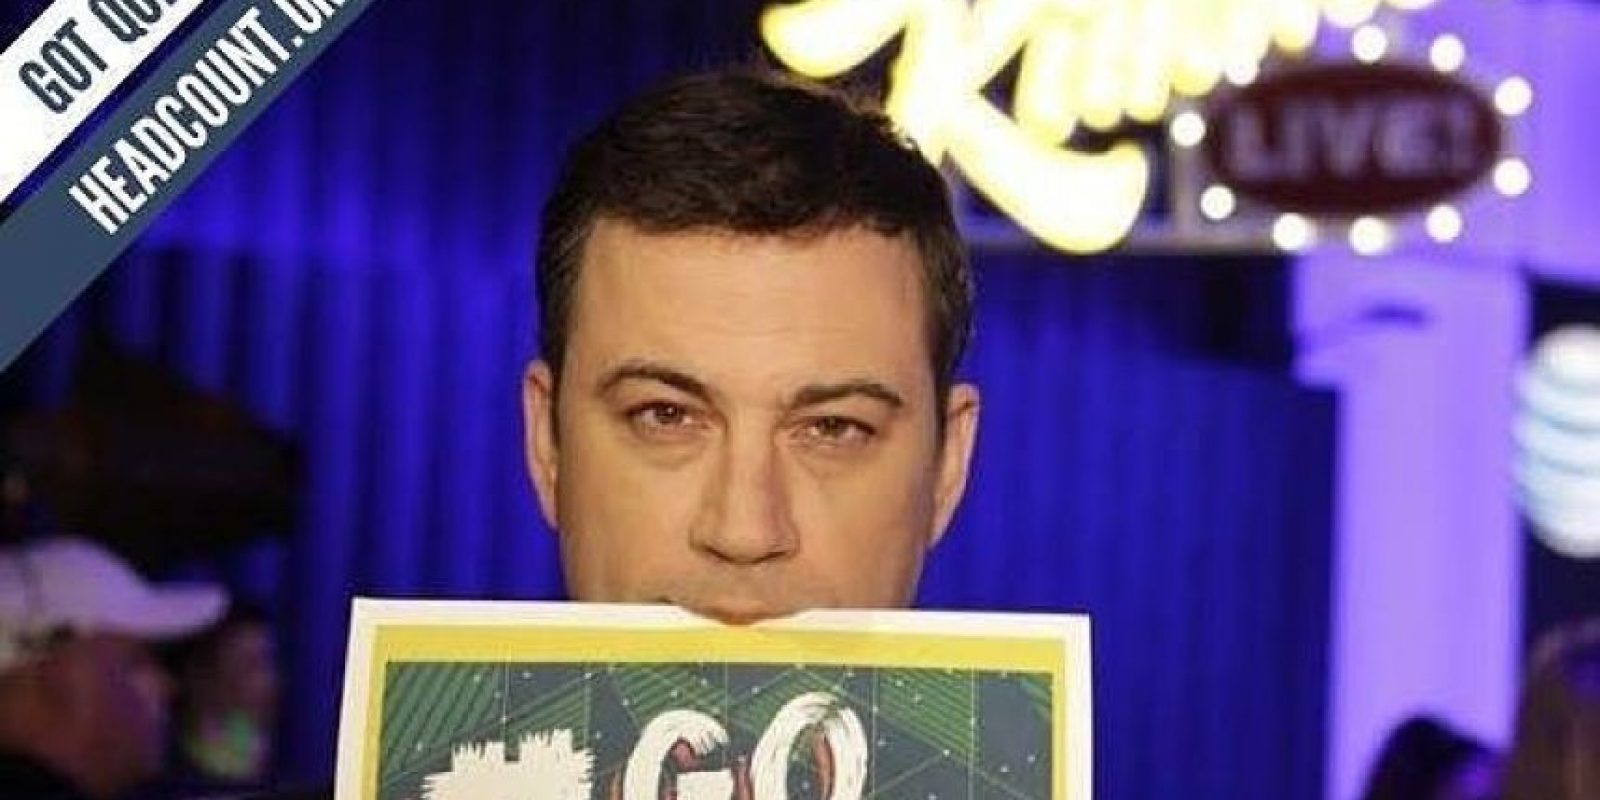 Jimmy Kimmel Foto: Facebook Headcount